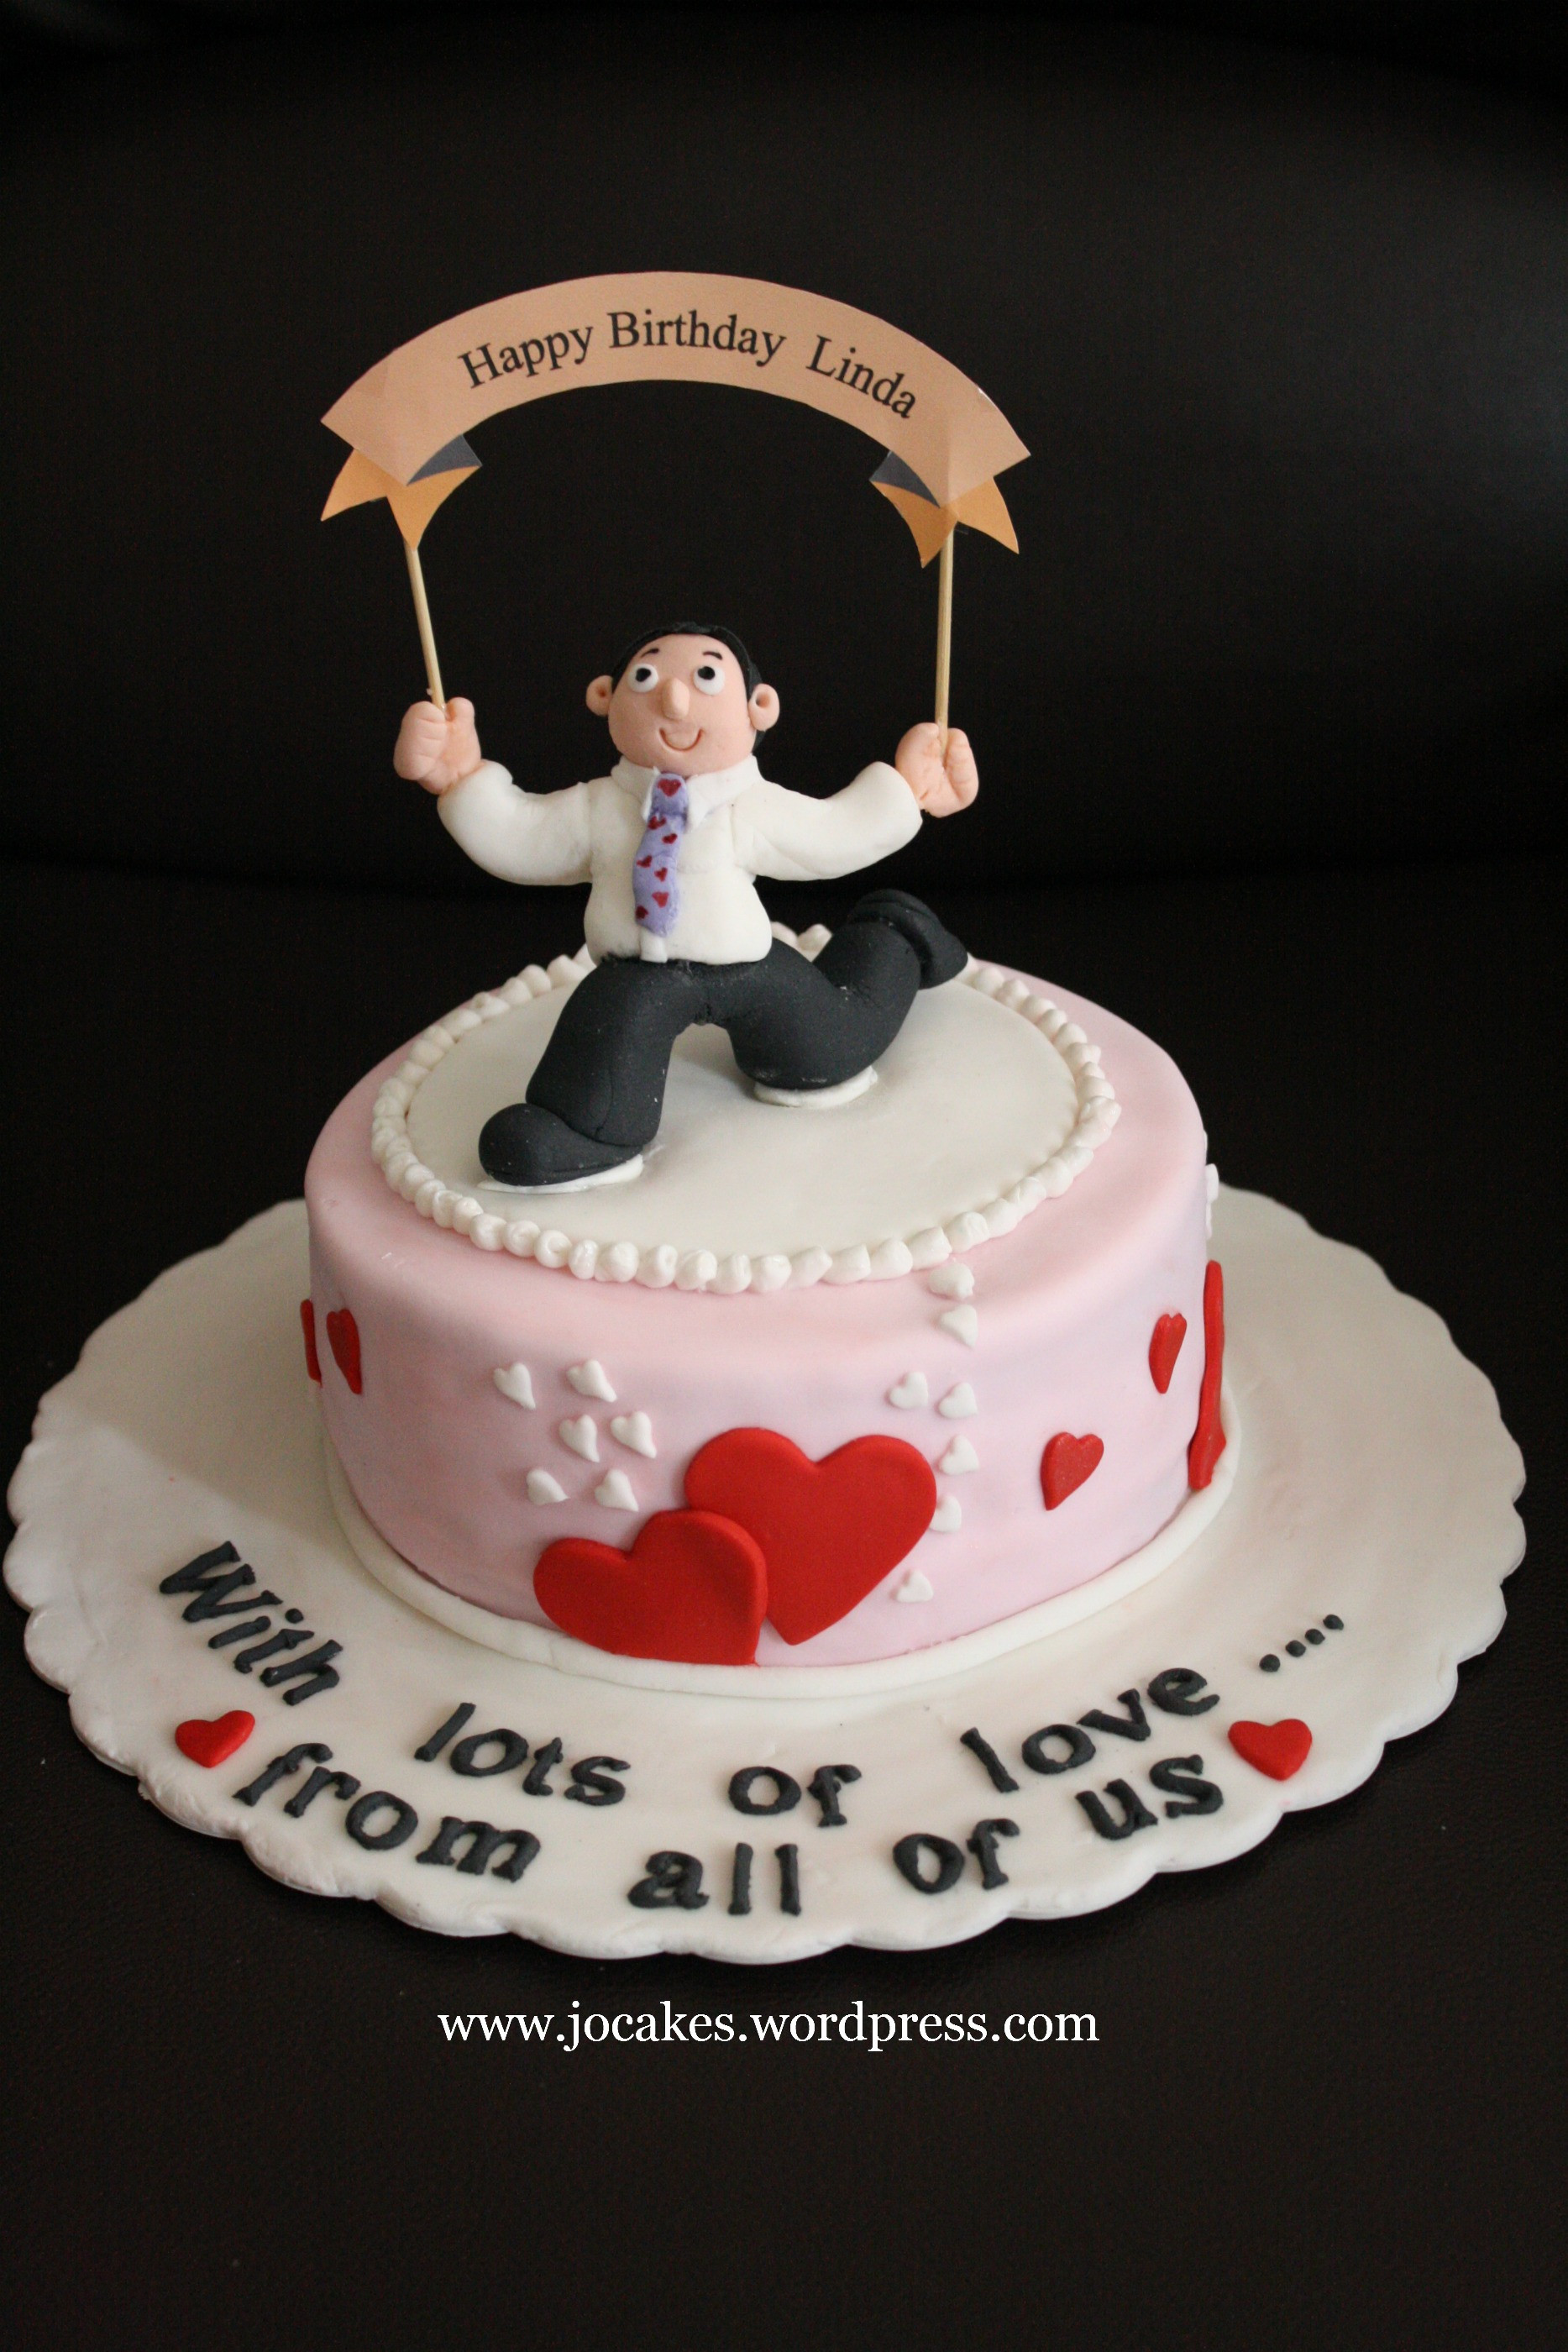 Best ideas about Birthday Cake Images For Man . Save or Pin Birthday cake for Linda Now.